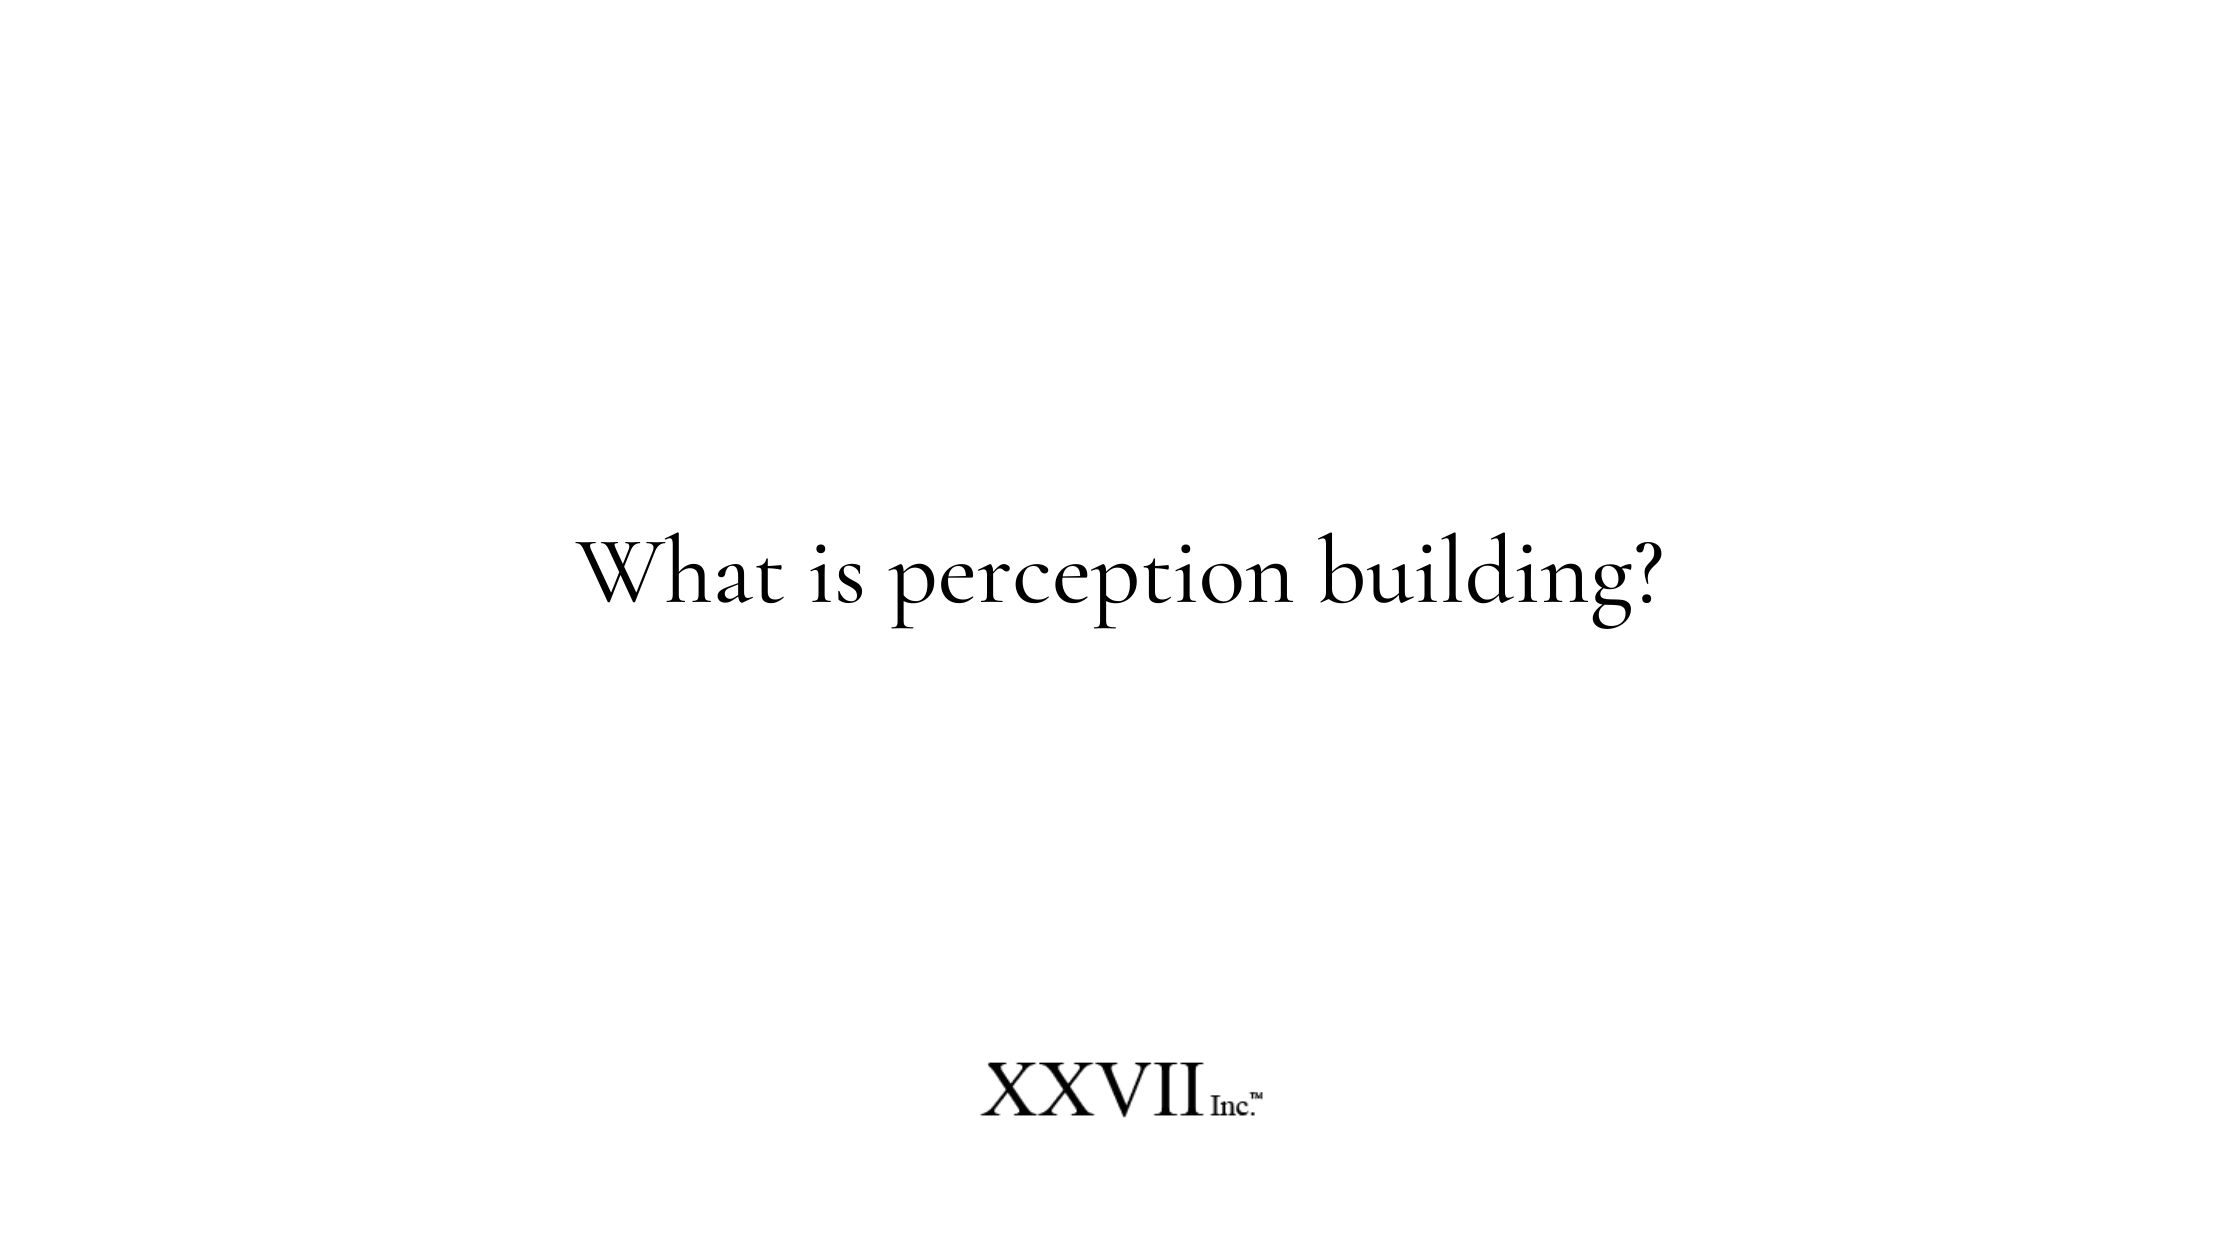 What is perception building?